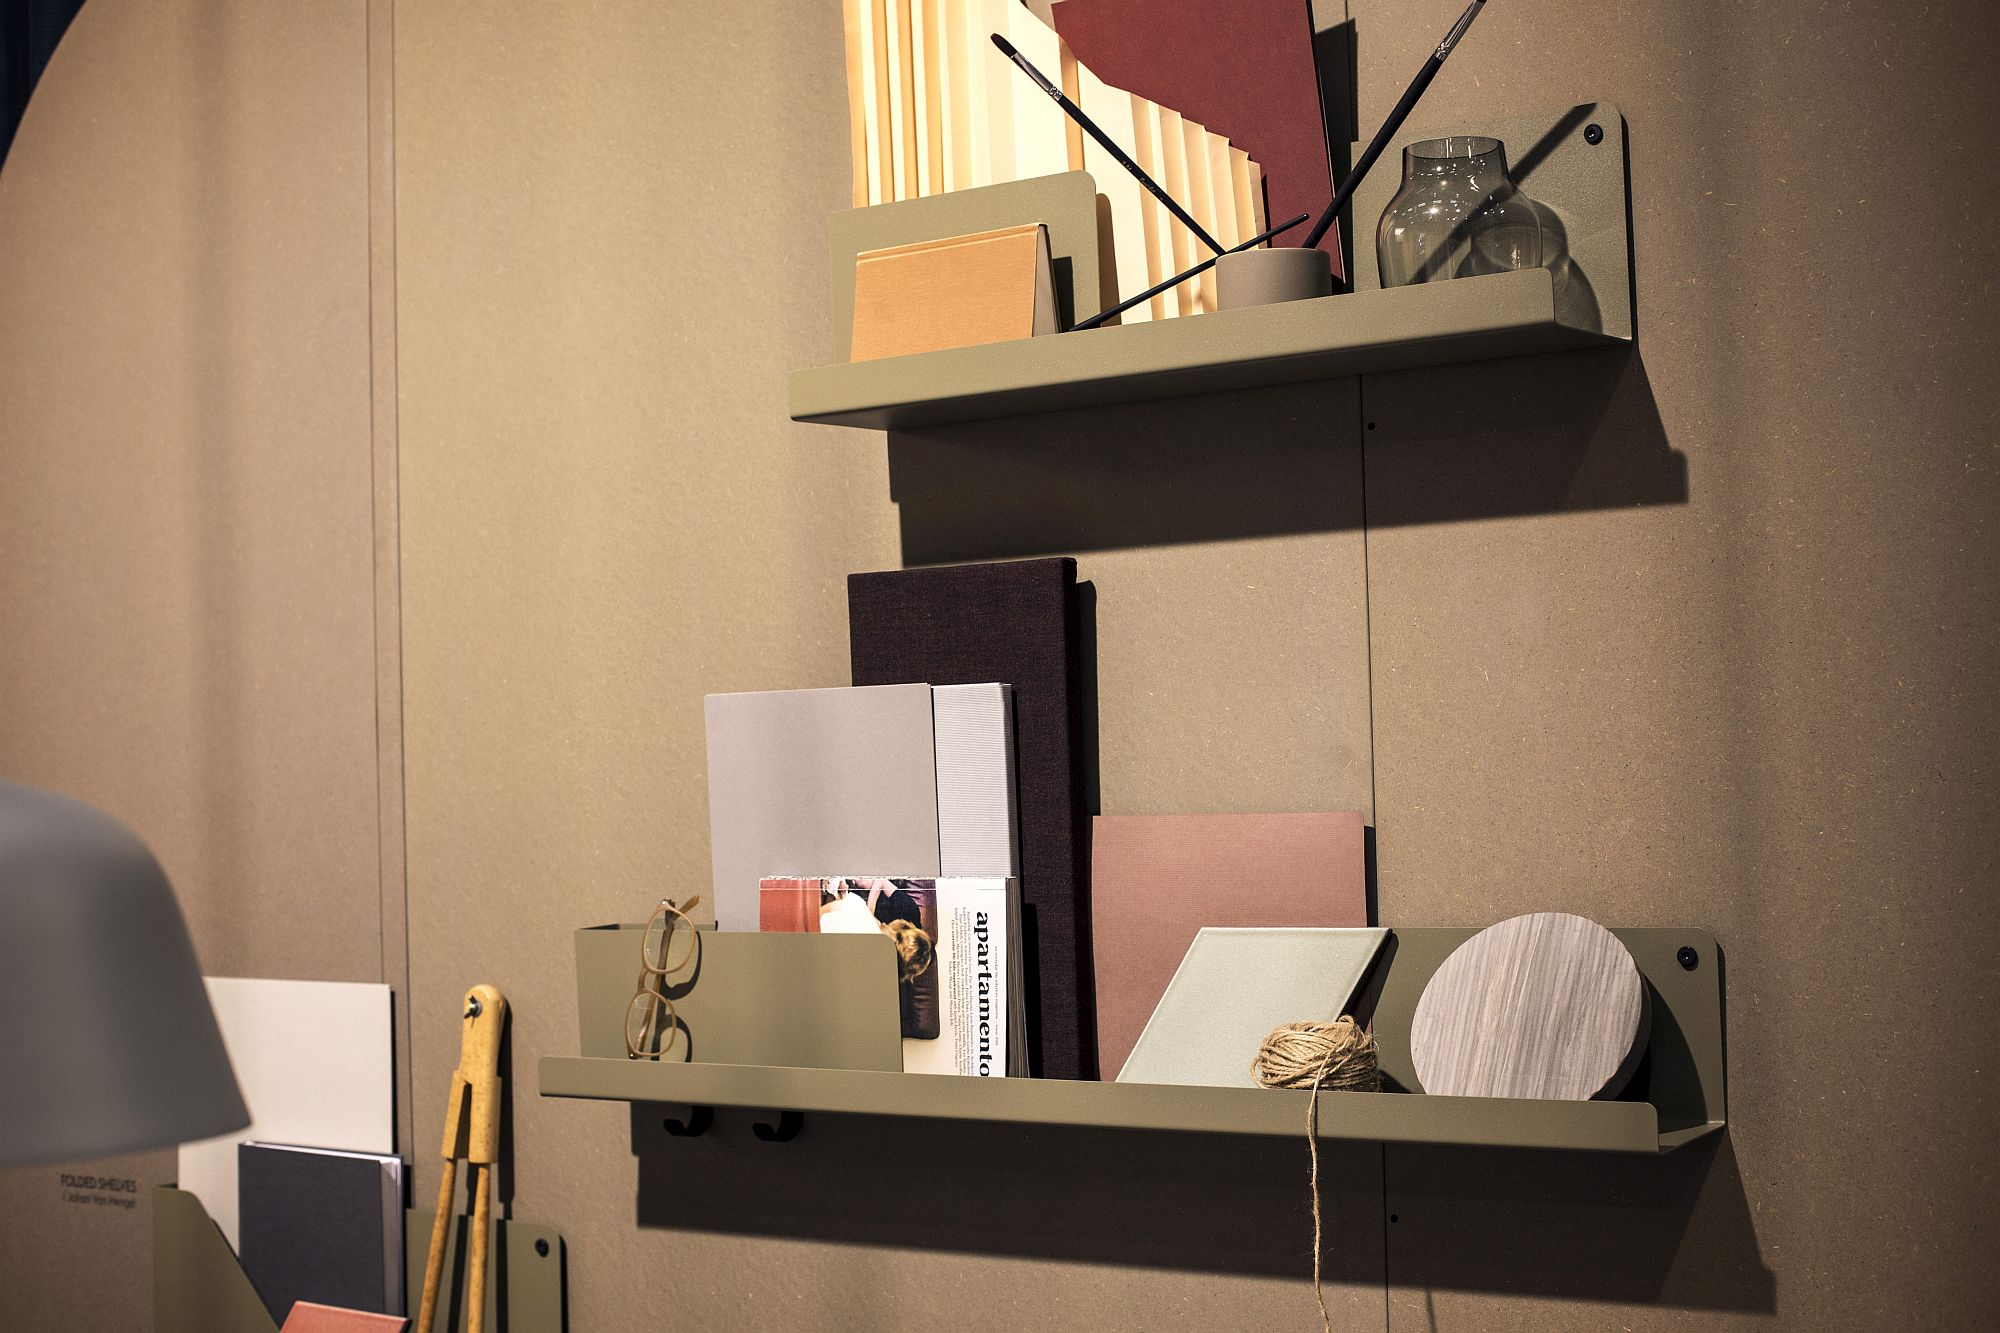 Small home office shelving idea that saves up on space